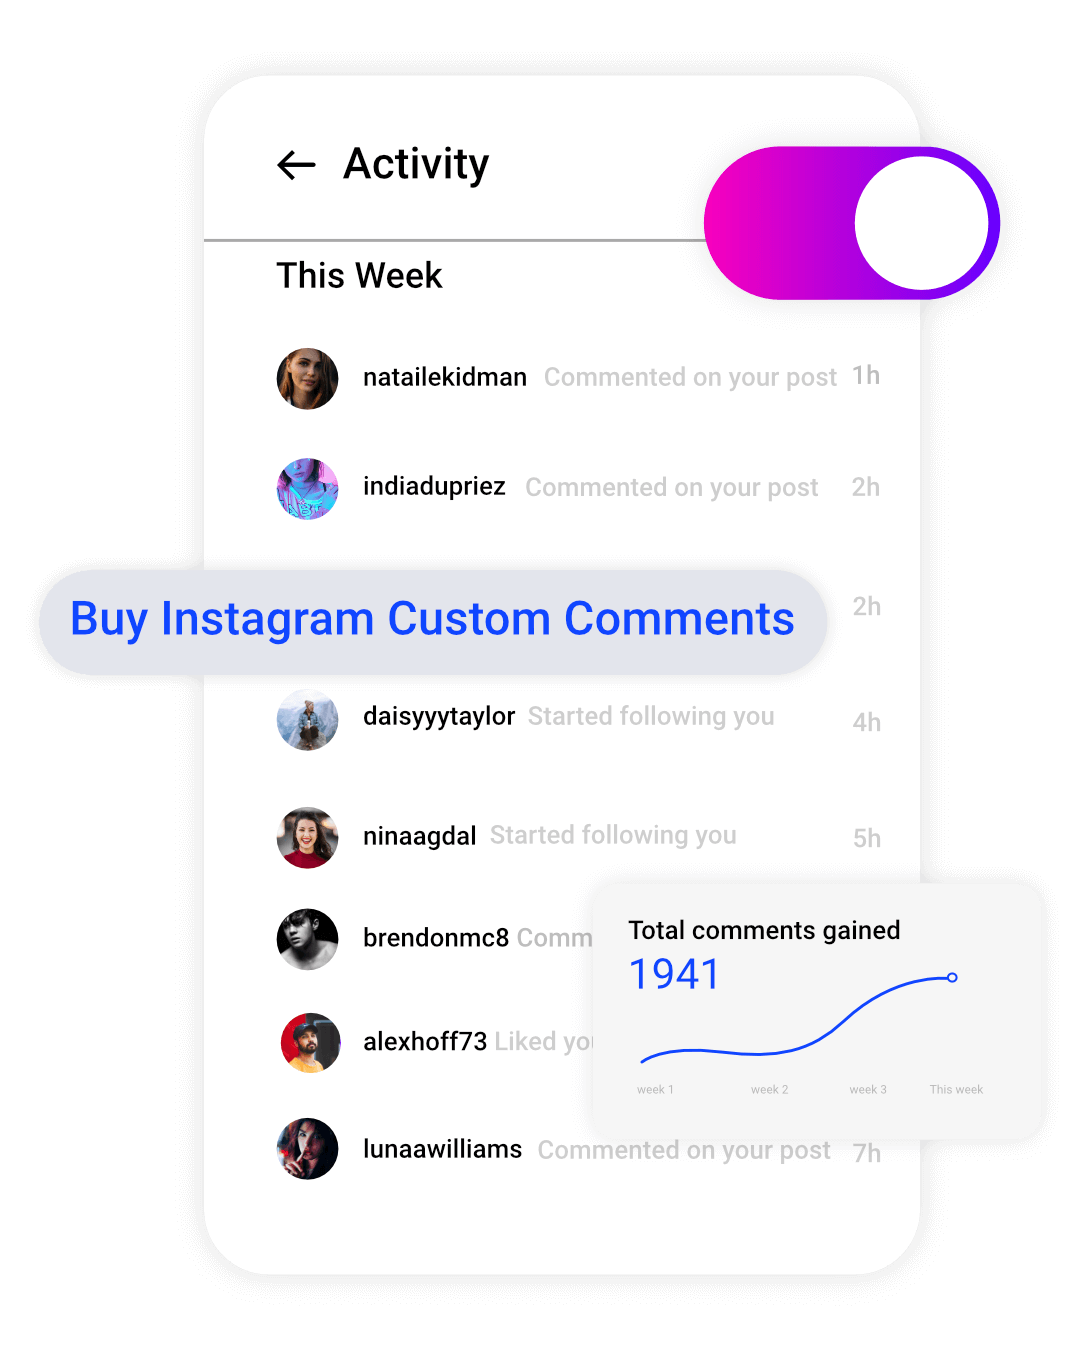 image of instagram custom comments available from buysellshoutouts.com